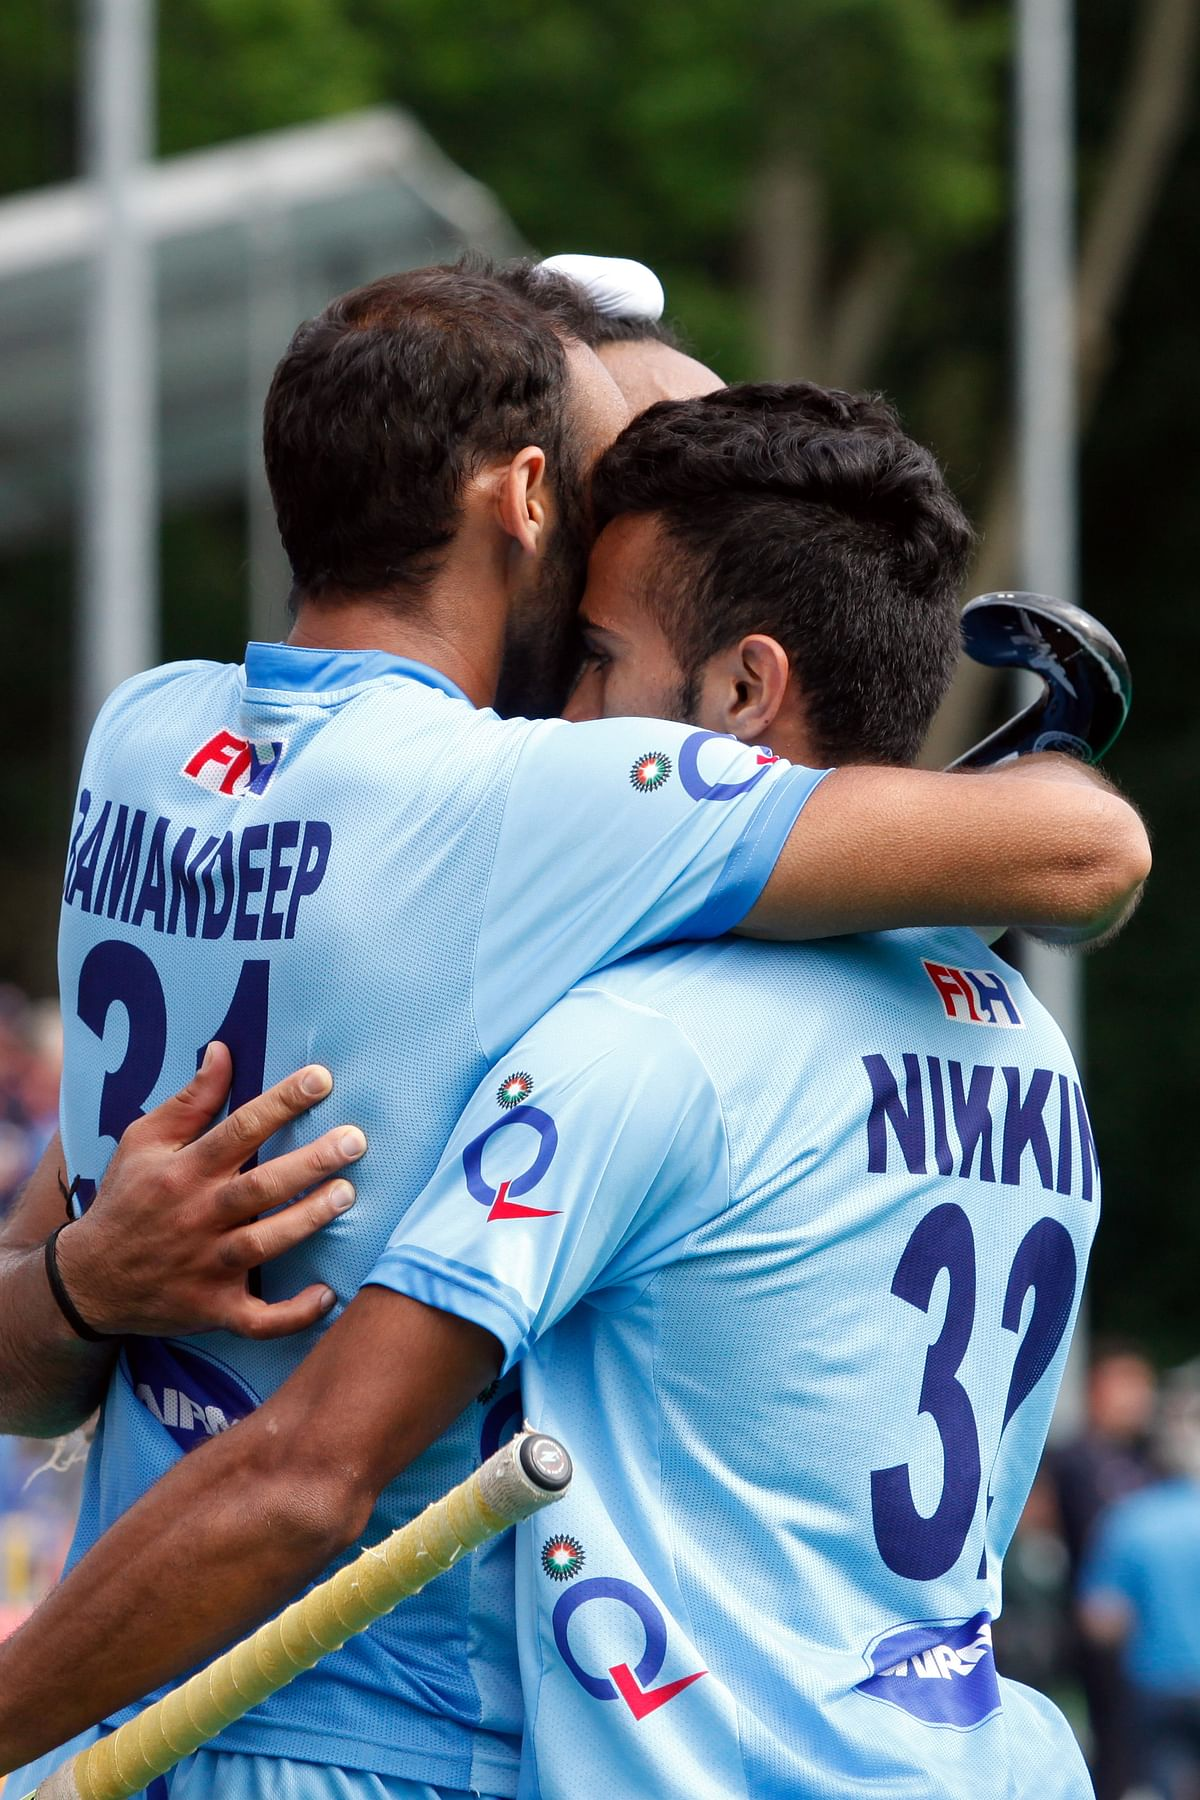 Members of the Indian hockey team celebrate after scoring a goal during the World League Semi-Finals in Antwerp earlier this month. (Photo: AP)